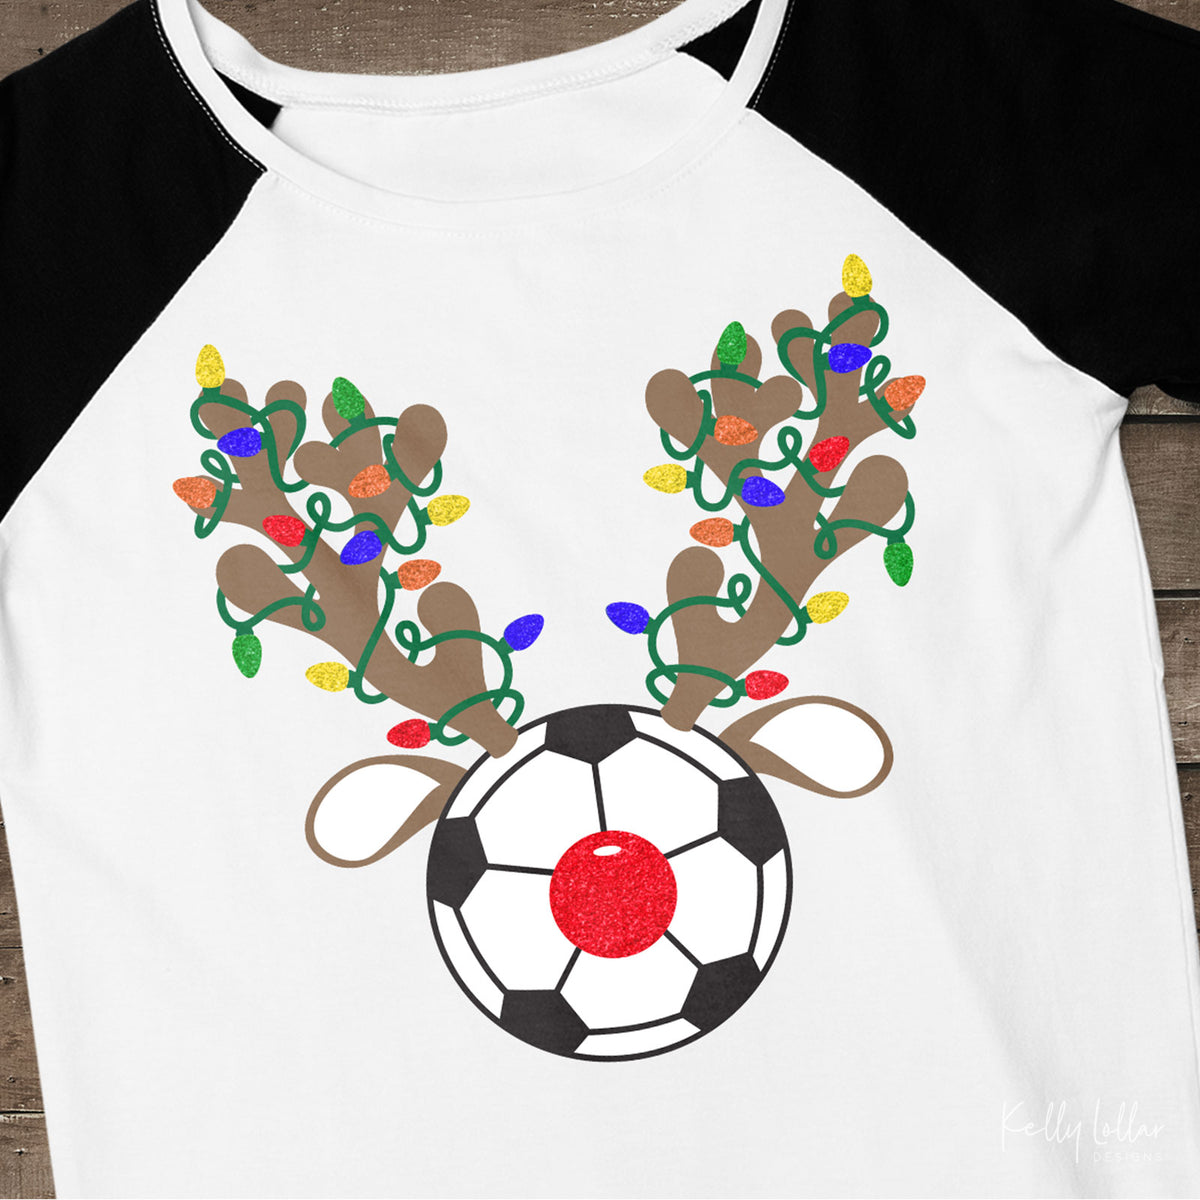 Christmas Light Wrapped Reindeer Antlers and Ears on a Soccer Ball for Holiday Shirts and Decor | SVG DXF PNG Cut Files